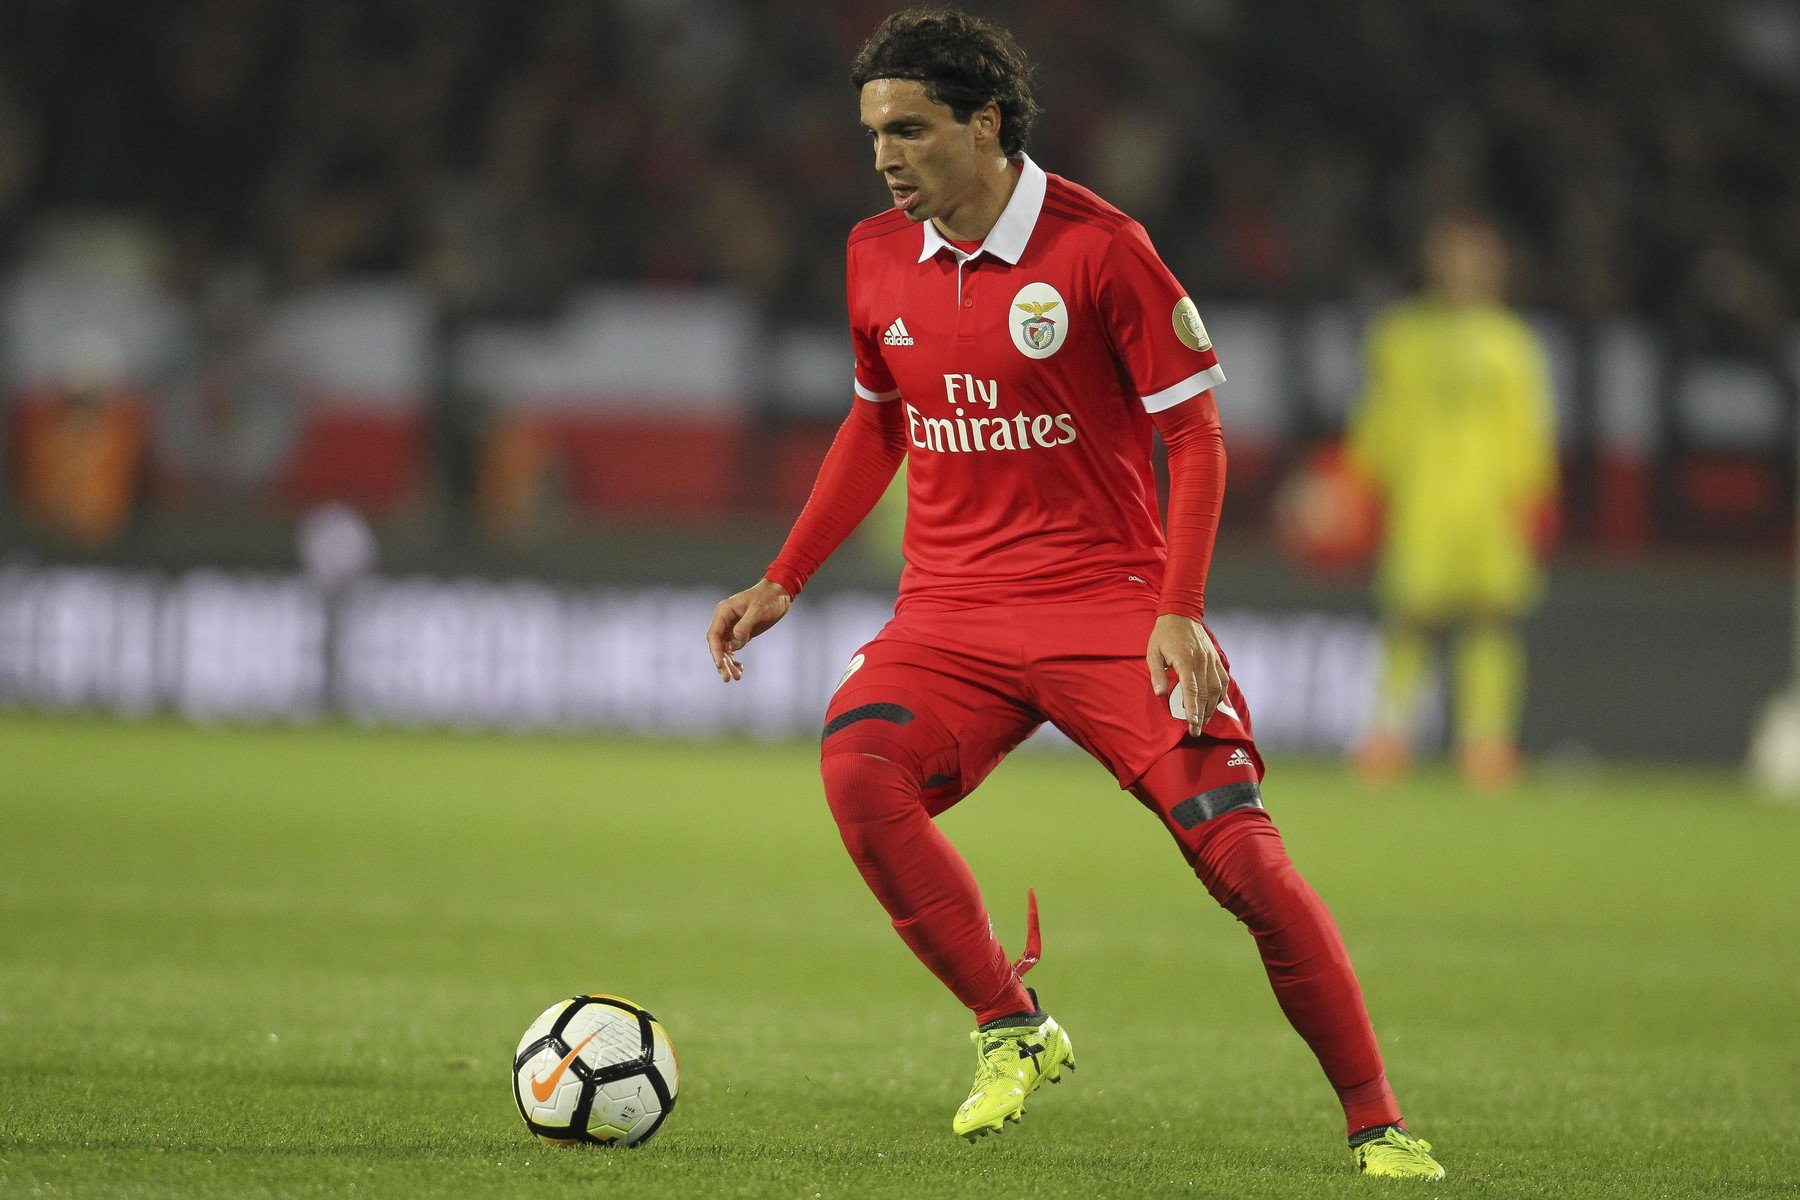 November 5, 2017 - Guimaraes, Guimaraes, Spain - Benfica's Croatian midfielder Filip Krovinovic during the Premier League 2017/18 match between Vitoria SC and SL Benfica, at Dao Afonso Henriques Stadium in Guimaraes on November 5, 2017., Image: 354700511, License: Rights-managed, Restrictions: * France Rights OUT *, Model Release: no, Credit line: Profimedia, Zuma Press - News